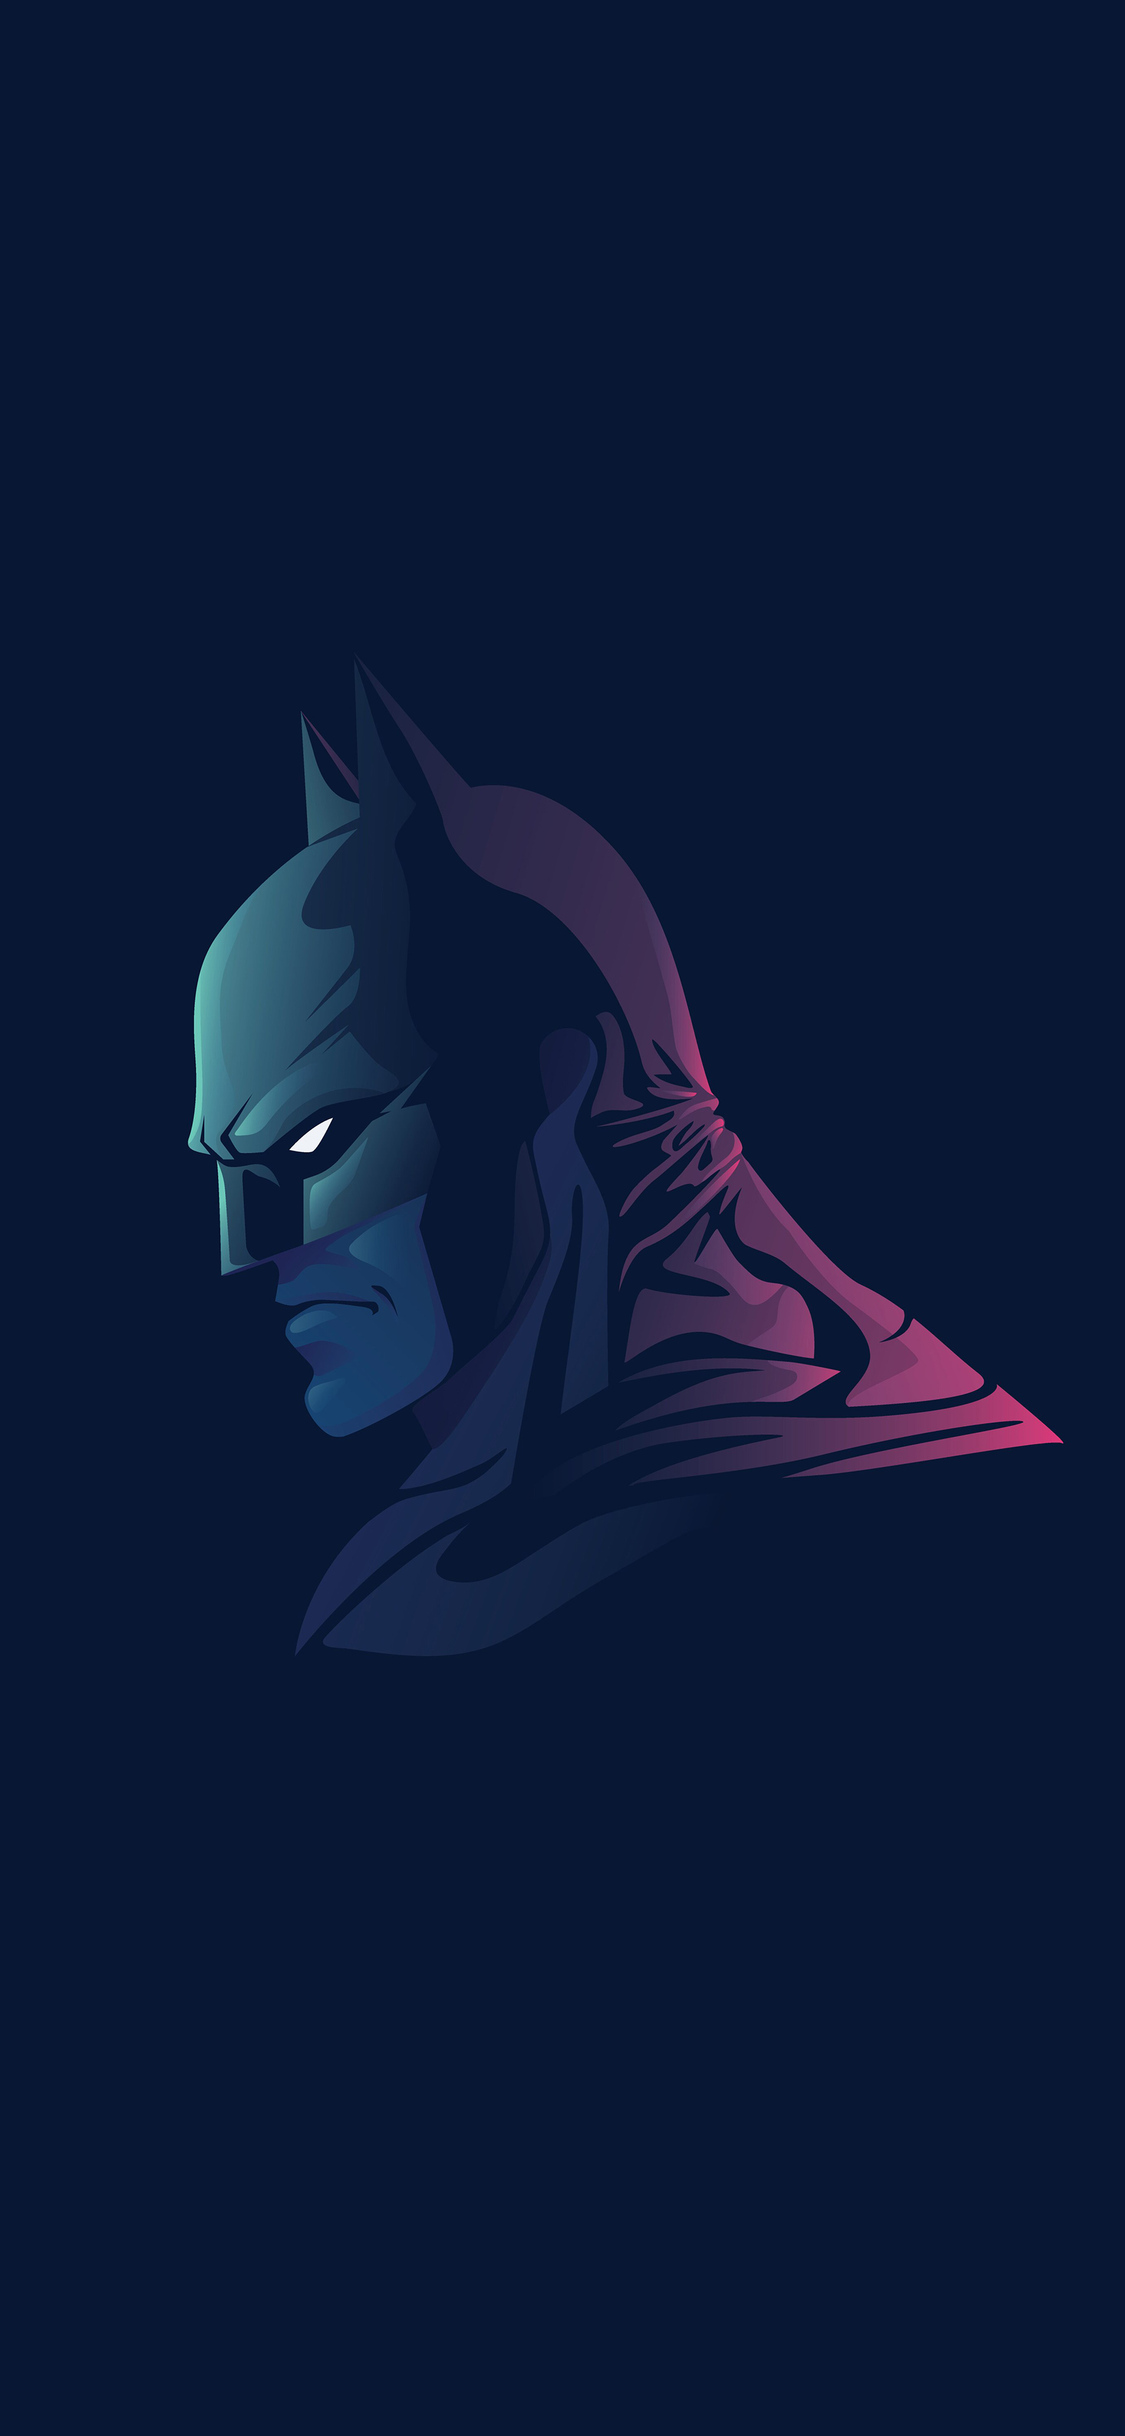 1125x2436 Batman The Dark Knight Minimal Iphone Xs Iphone 10 Iphone X Hd 4k Wallpapers Images Backgrounds Photos And Pictures